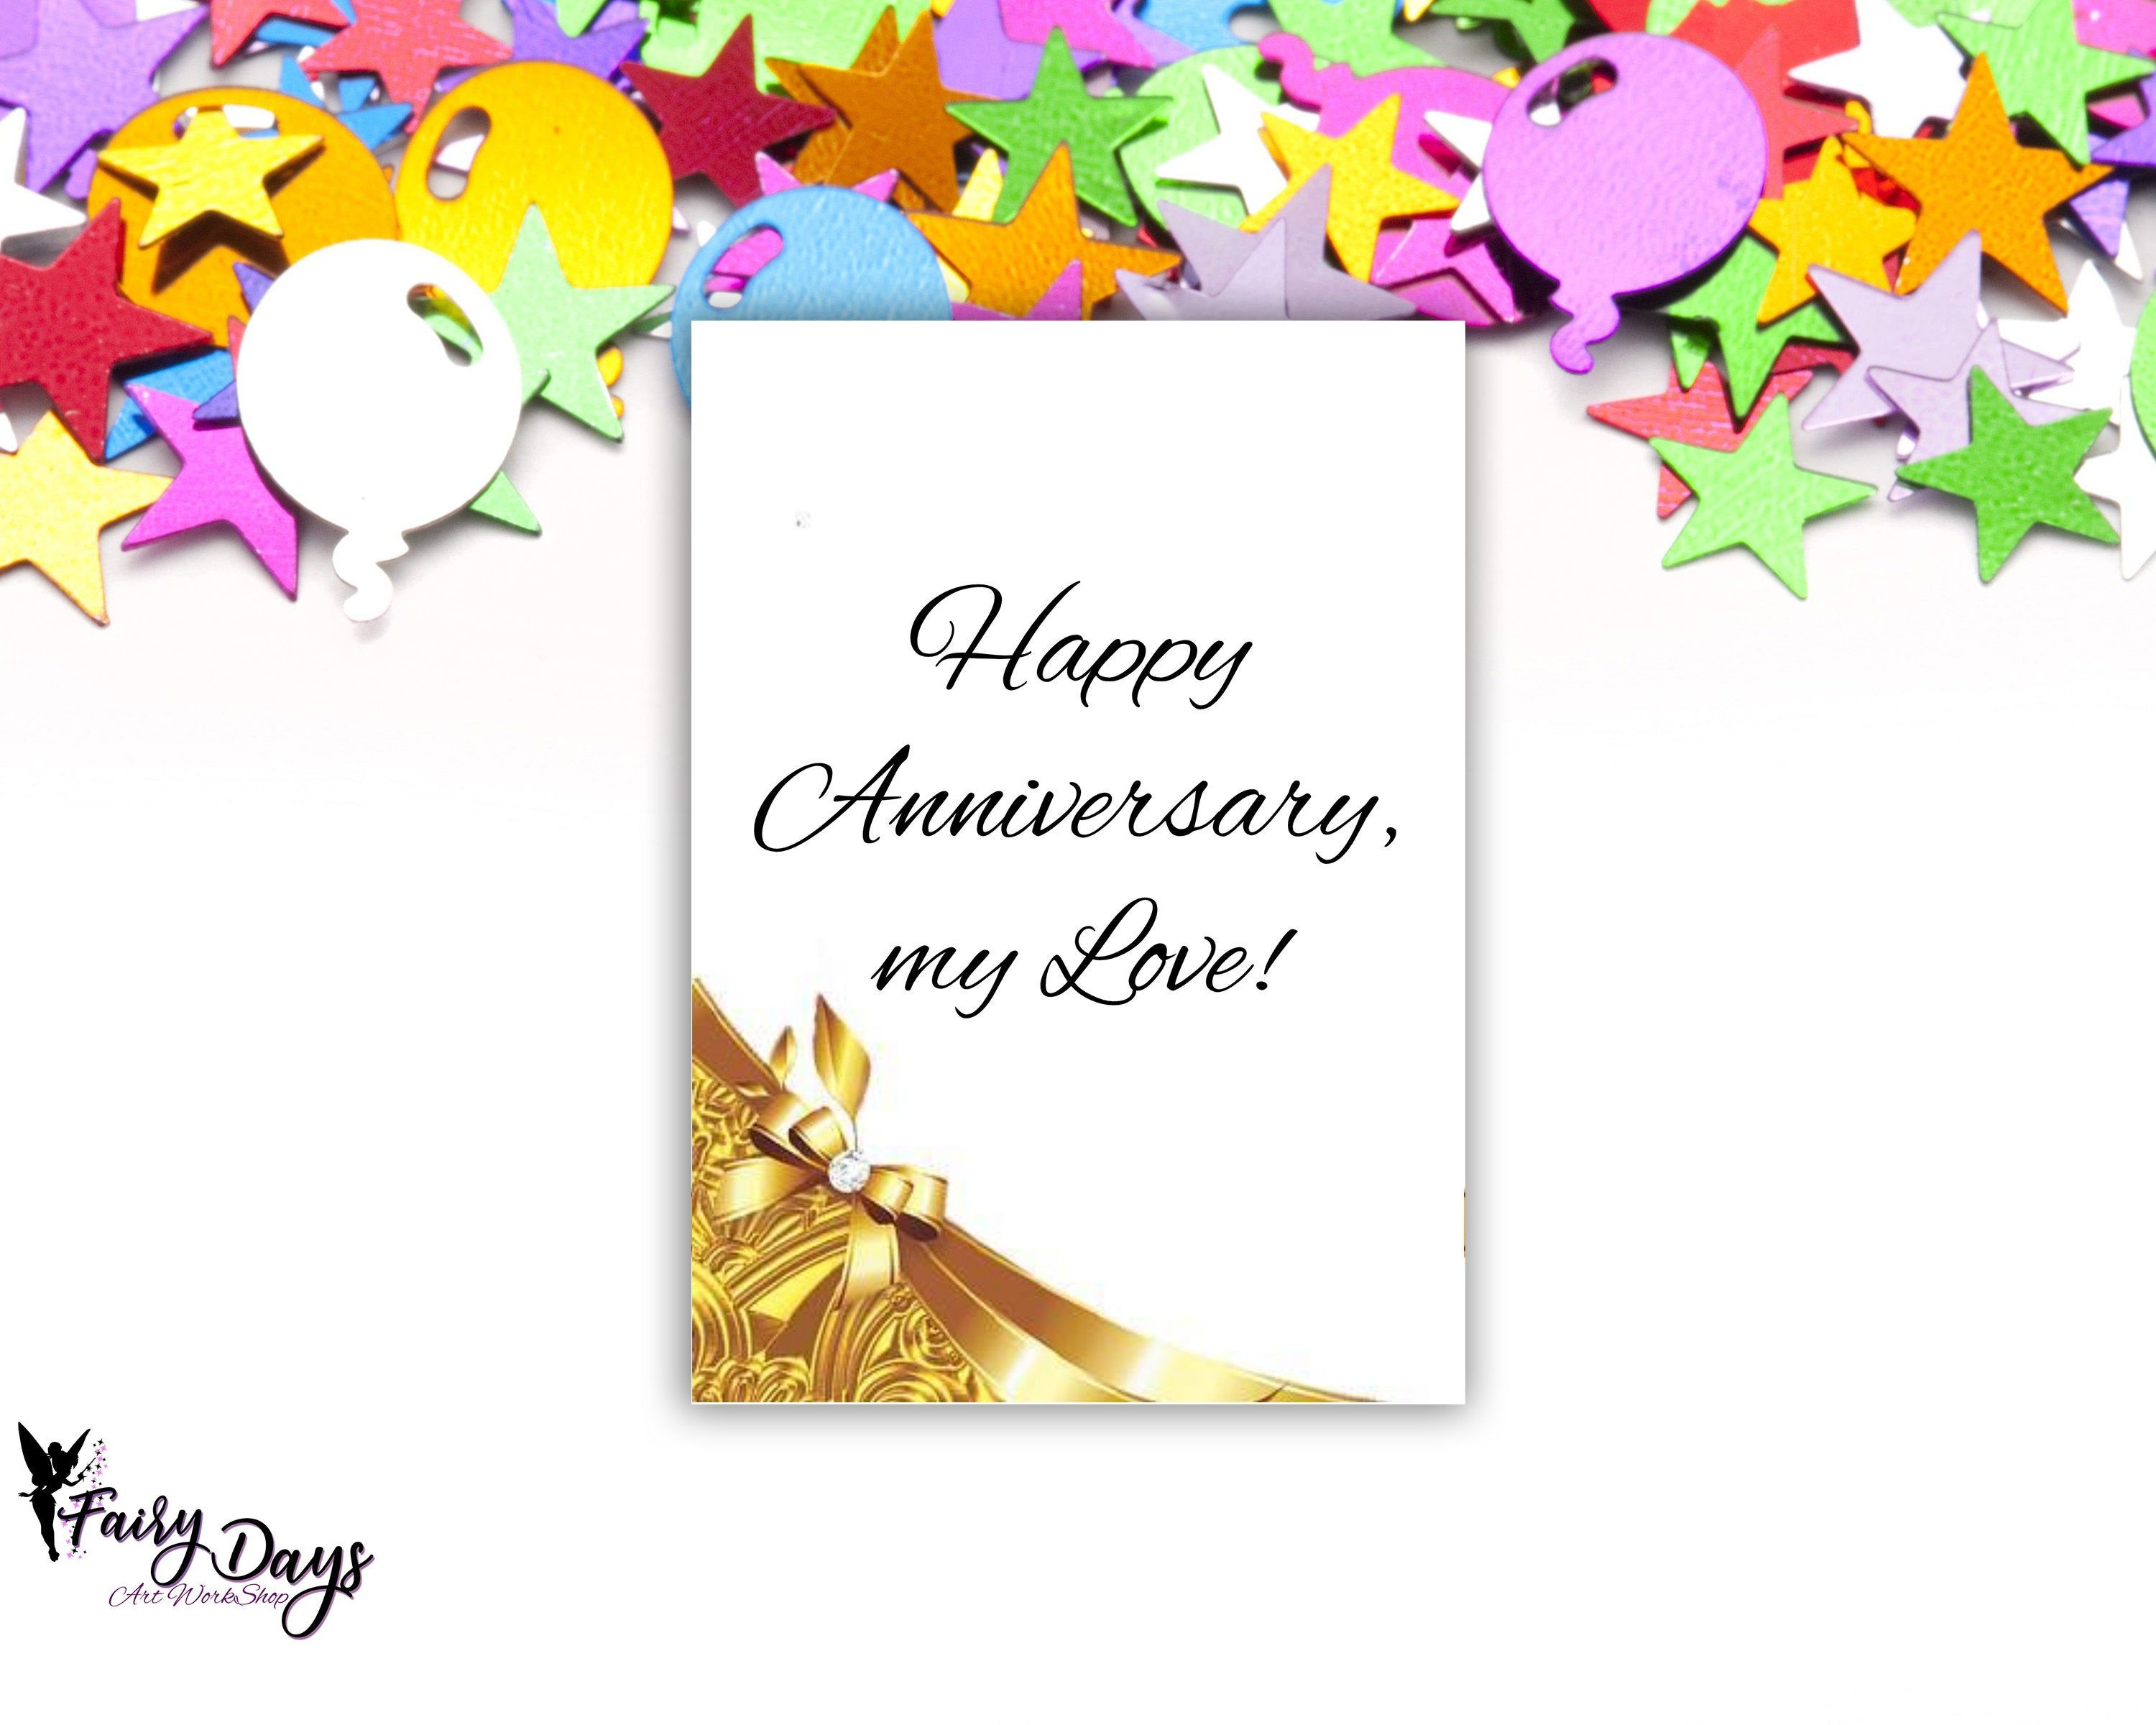 Anniversary Card Anniversary Card Templates Anniversary Card Template For Anniversary Edit Temple Anniversary Cards Print Your Own Invitations Anniversary